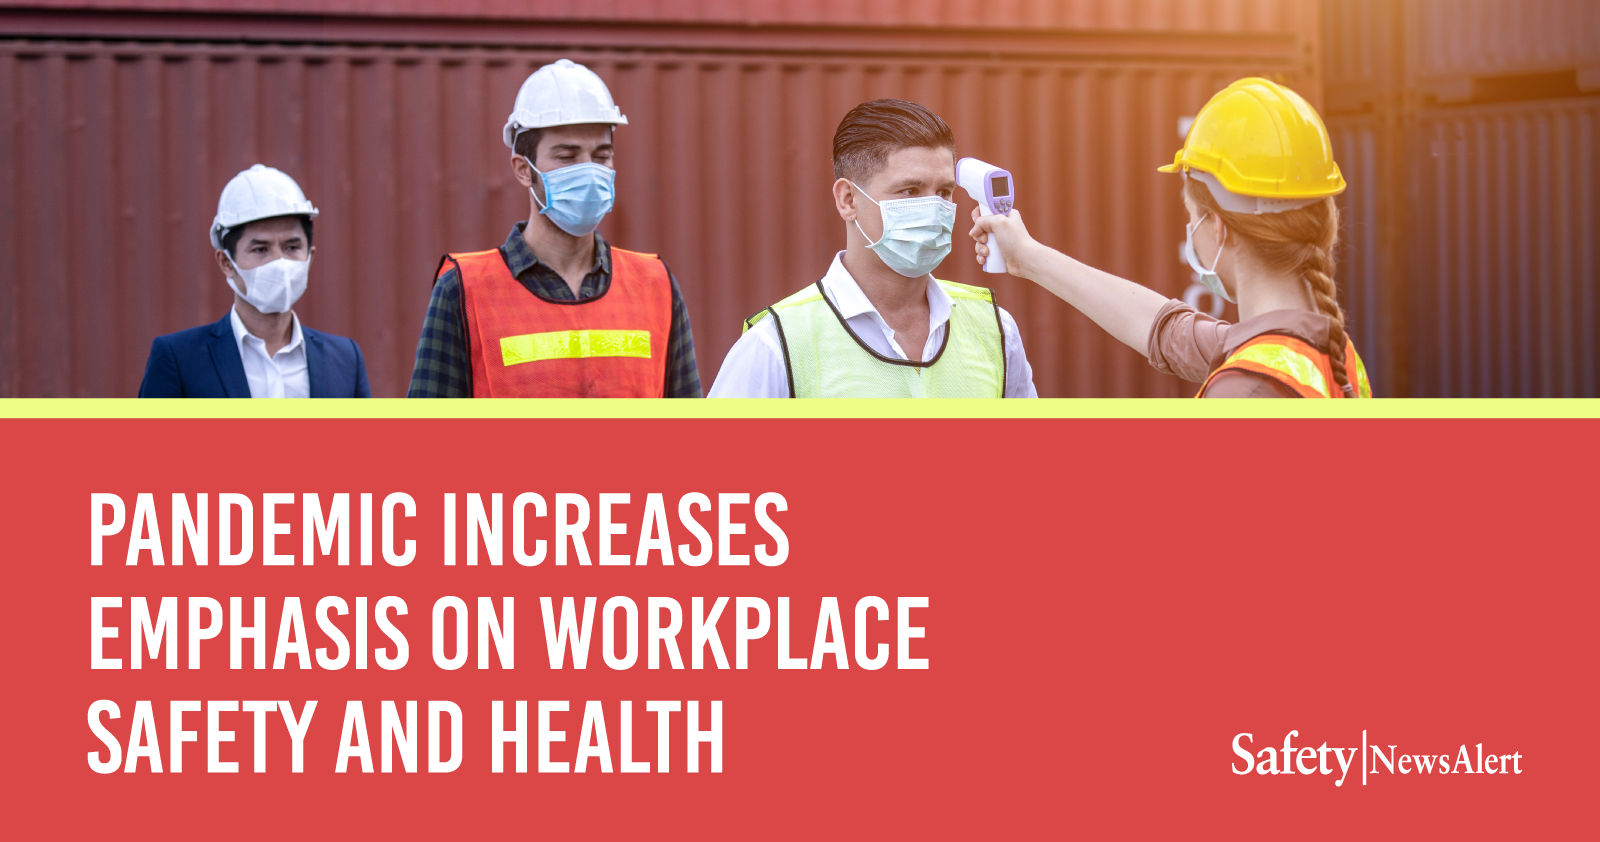 pandemic increases emphasis on workplace safety and health